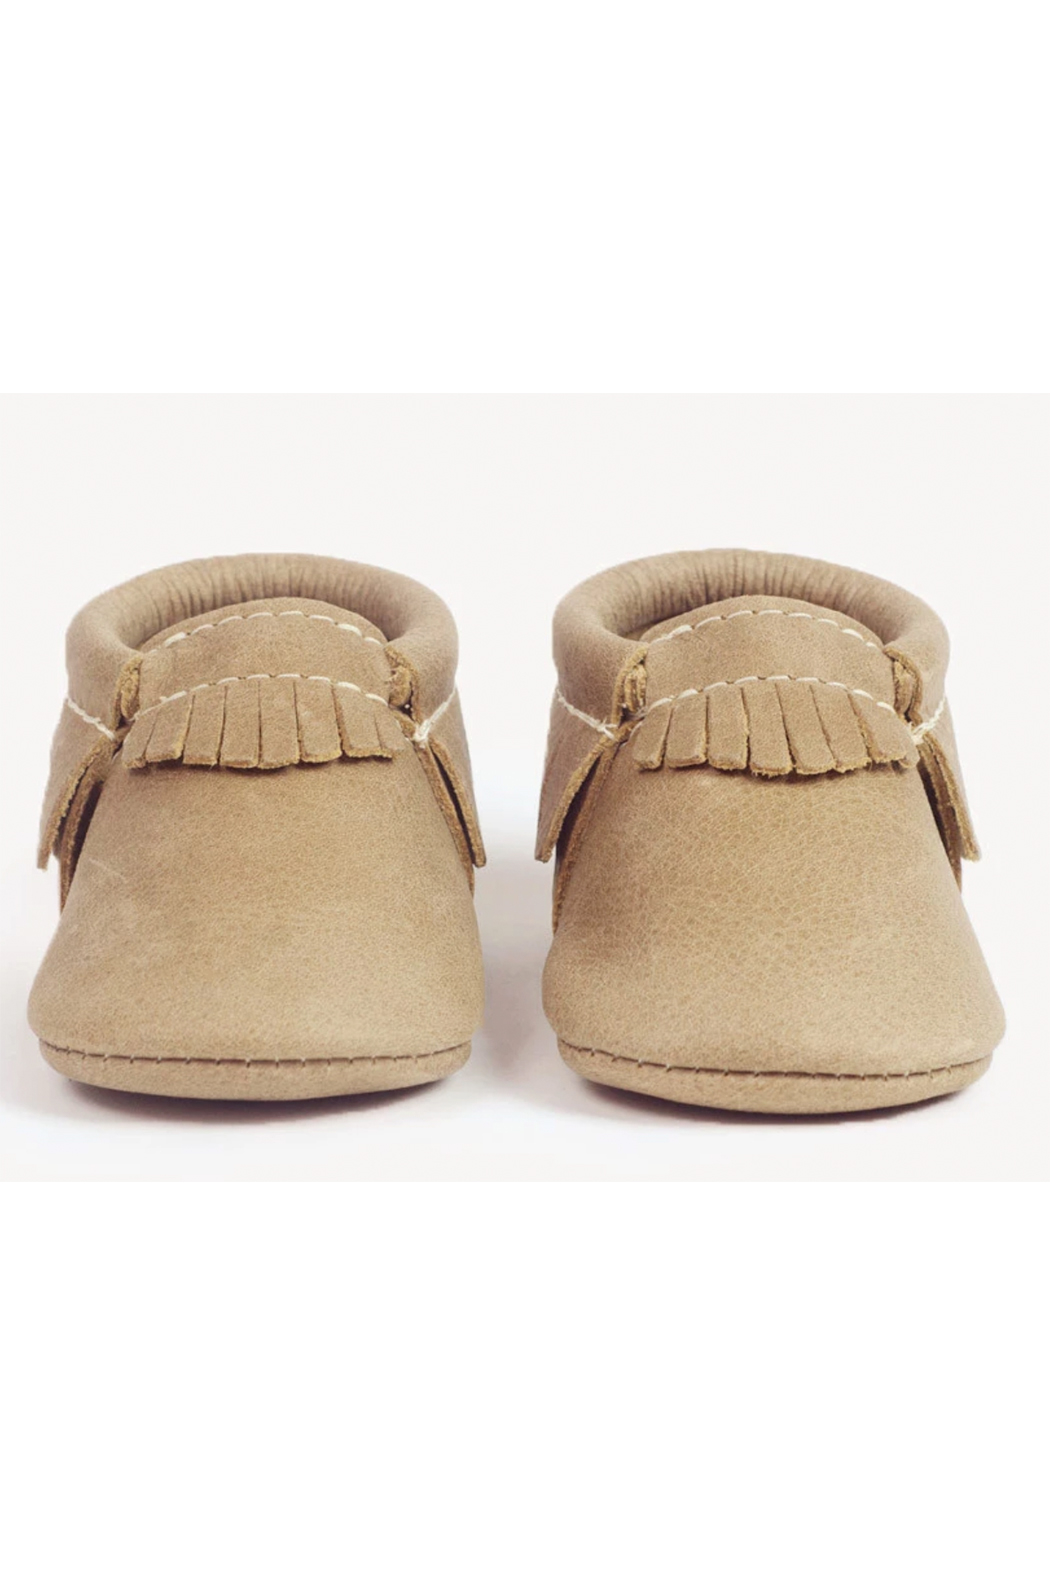 Freshly Picked Weathered Brown Moccasins - Front Full Image